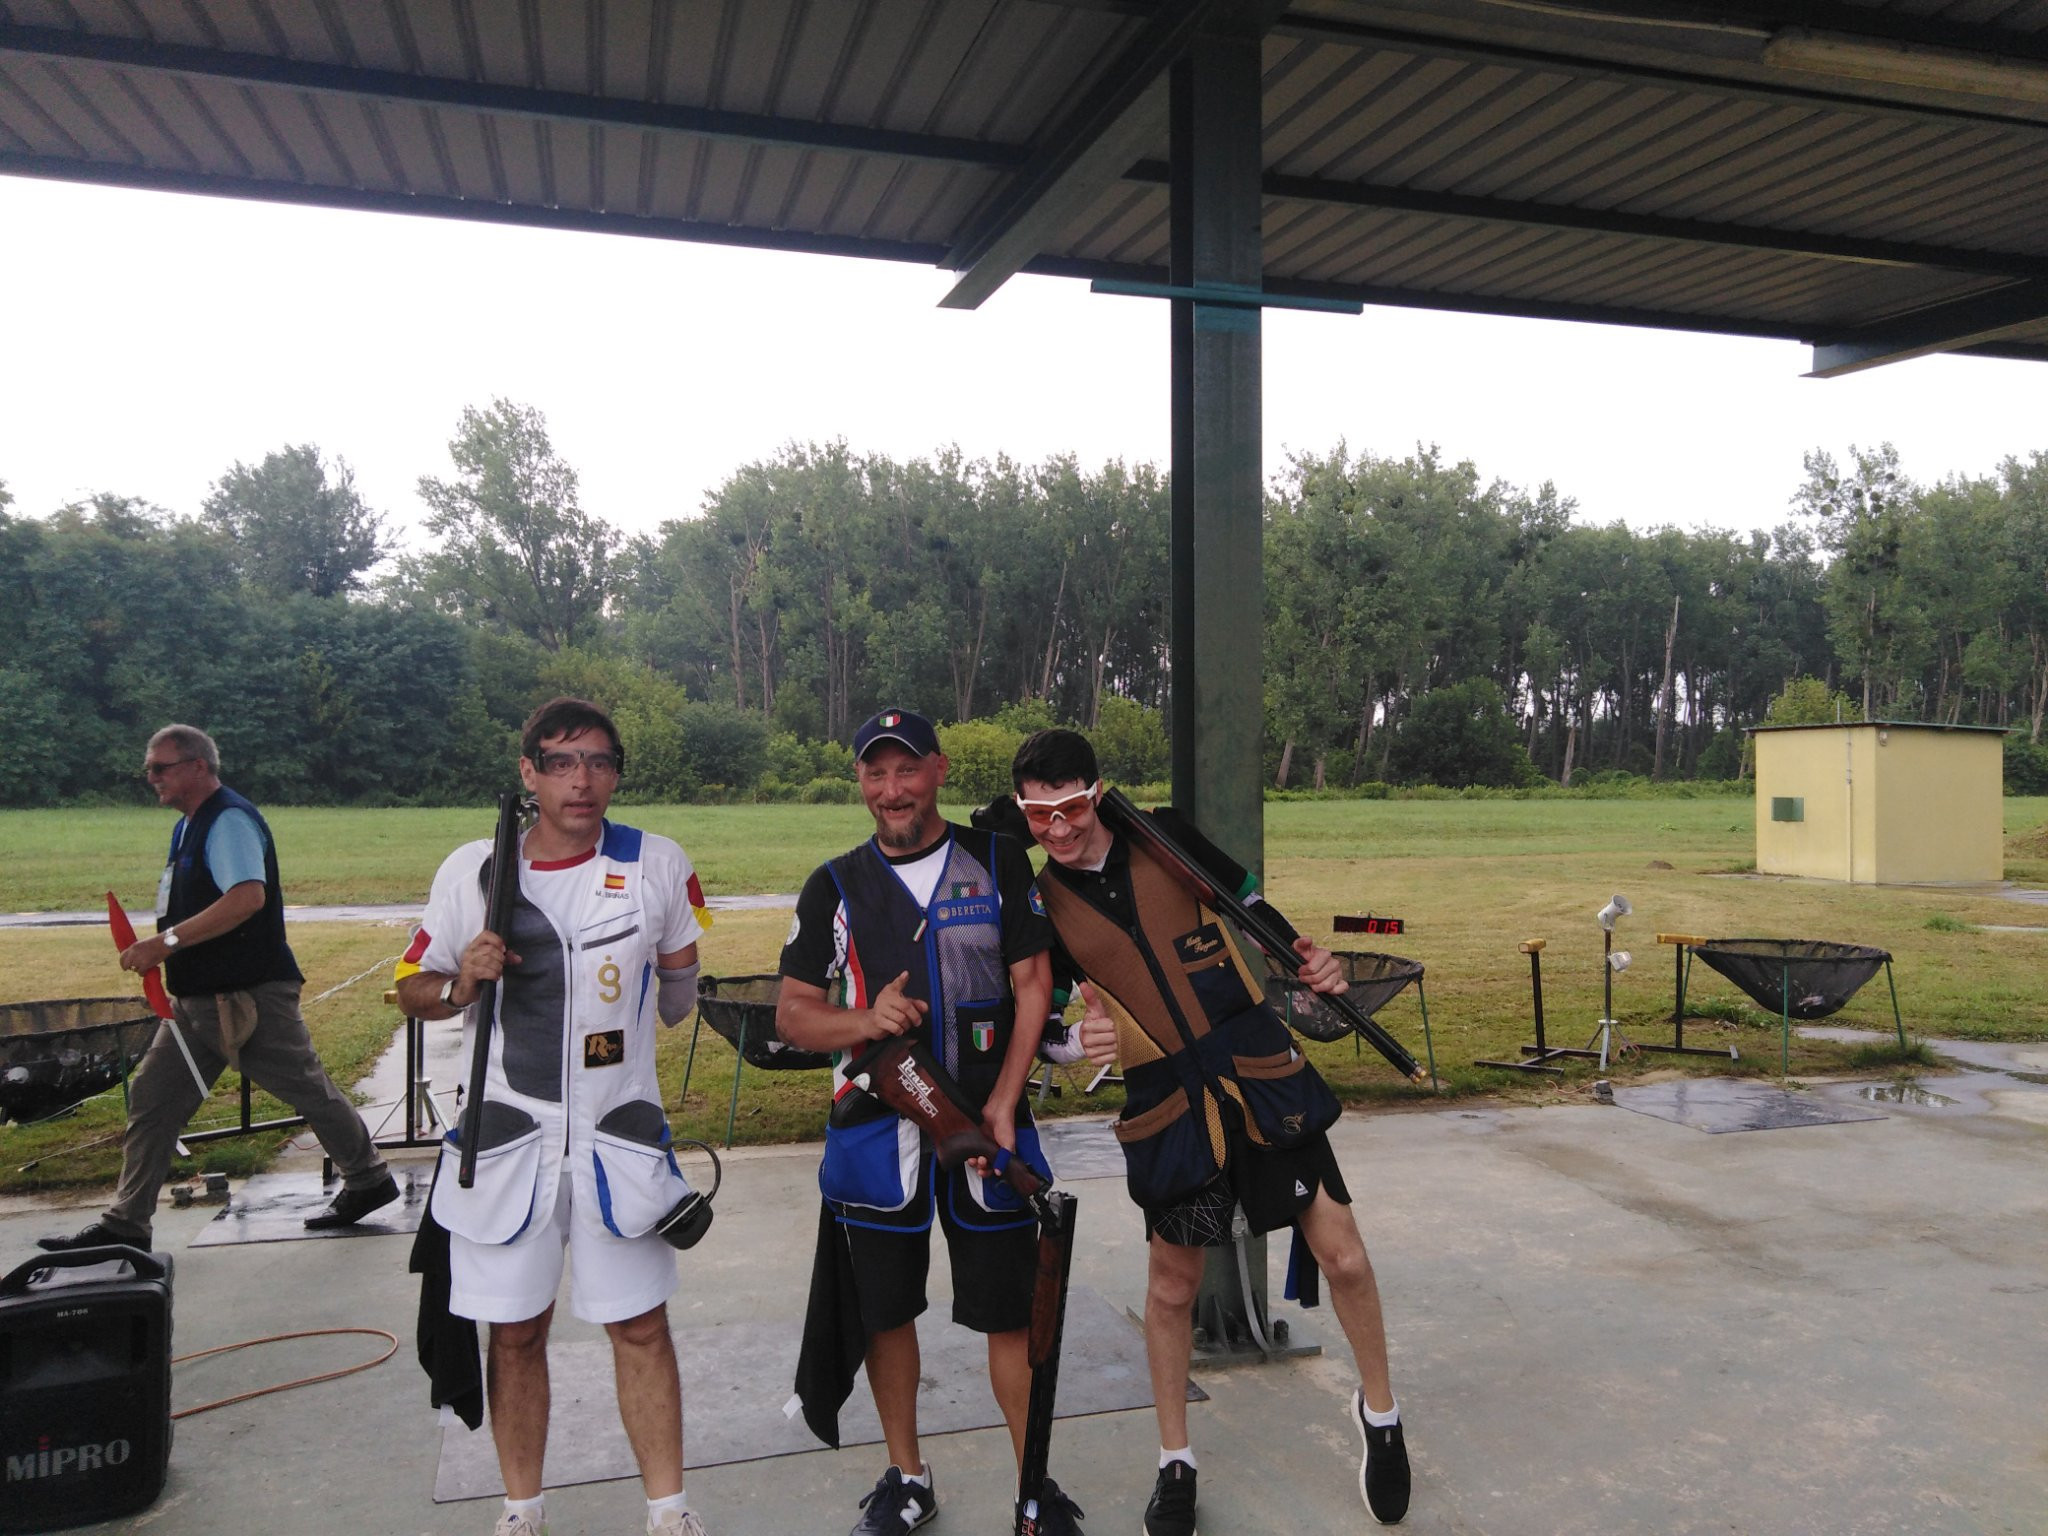 Italy secure double gold and Jokic sets world record at World Shooting Para Sport World Cup in Osijek